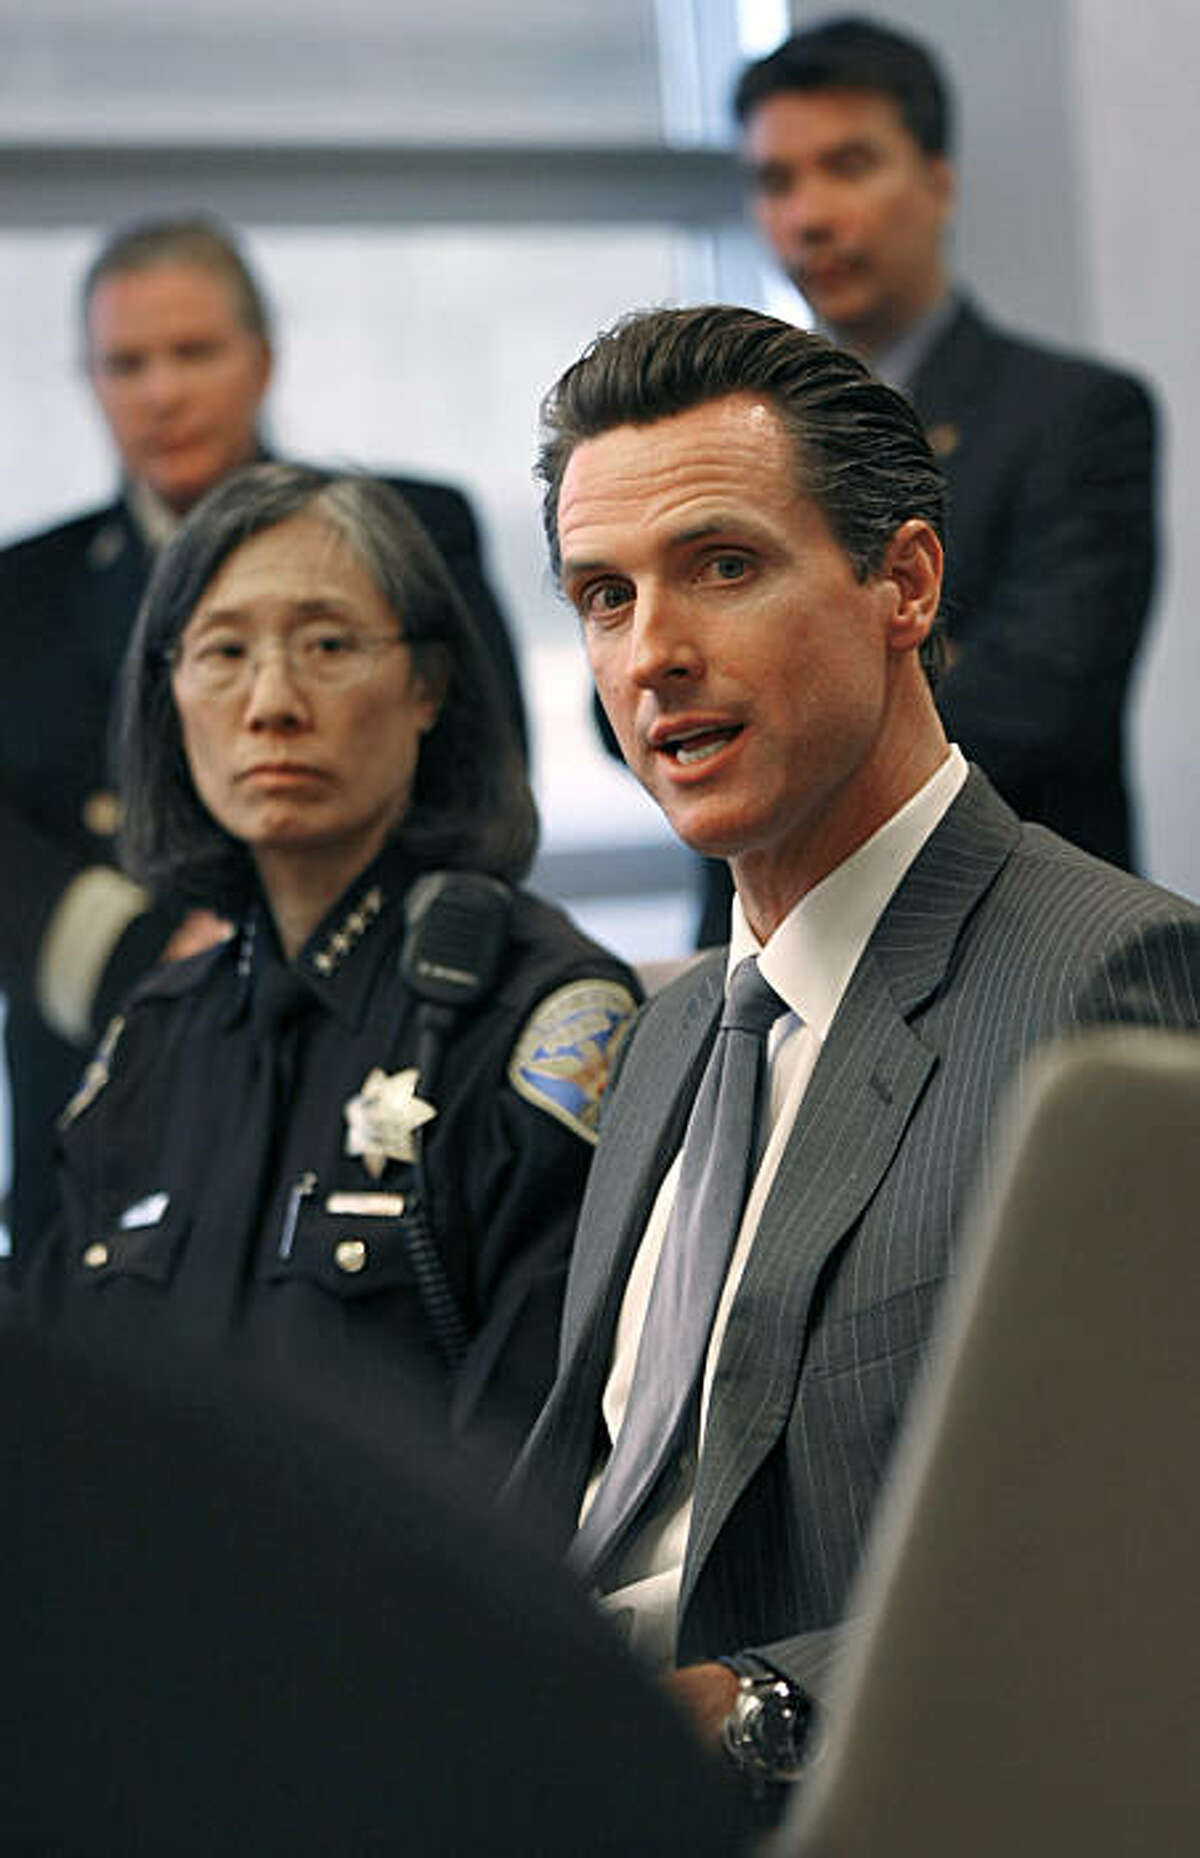 San Francisco Polic Chief Heather Fong, left, and Mayor Gavin Newsom explain their decisions regarding the Olympic Torch Relay at a press conference at San Francisco International Airport on Wednesday, April 9, 2008 Photo by Kim Komenich / San Francisco Chronicle